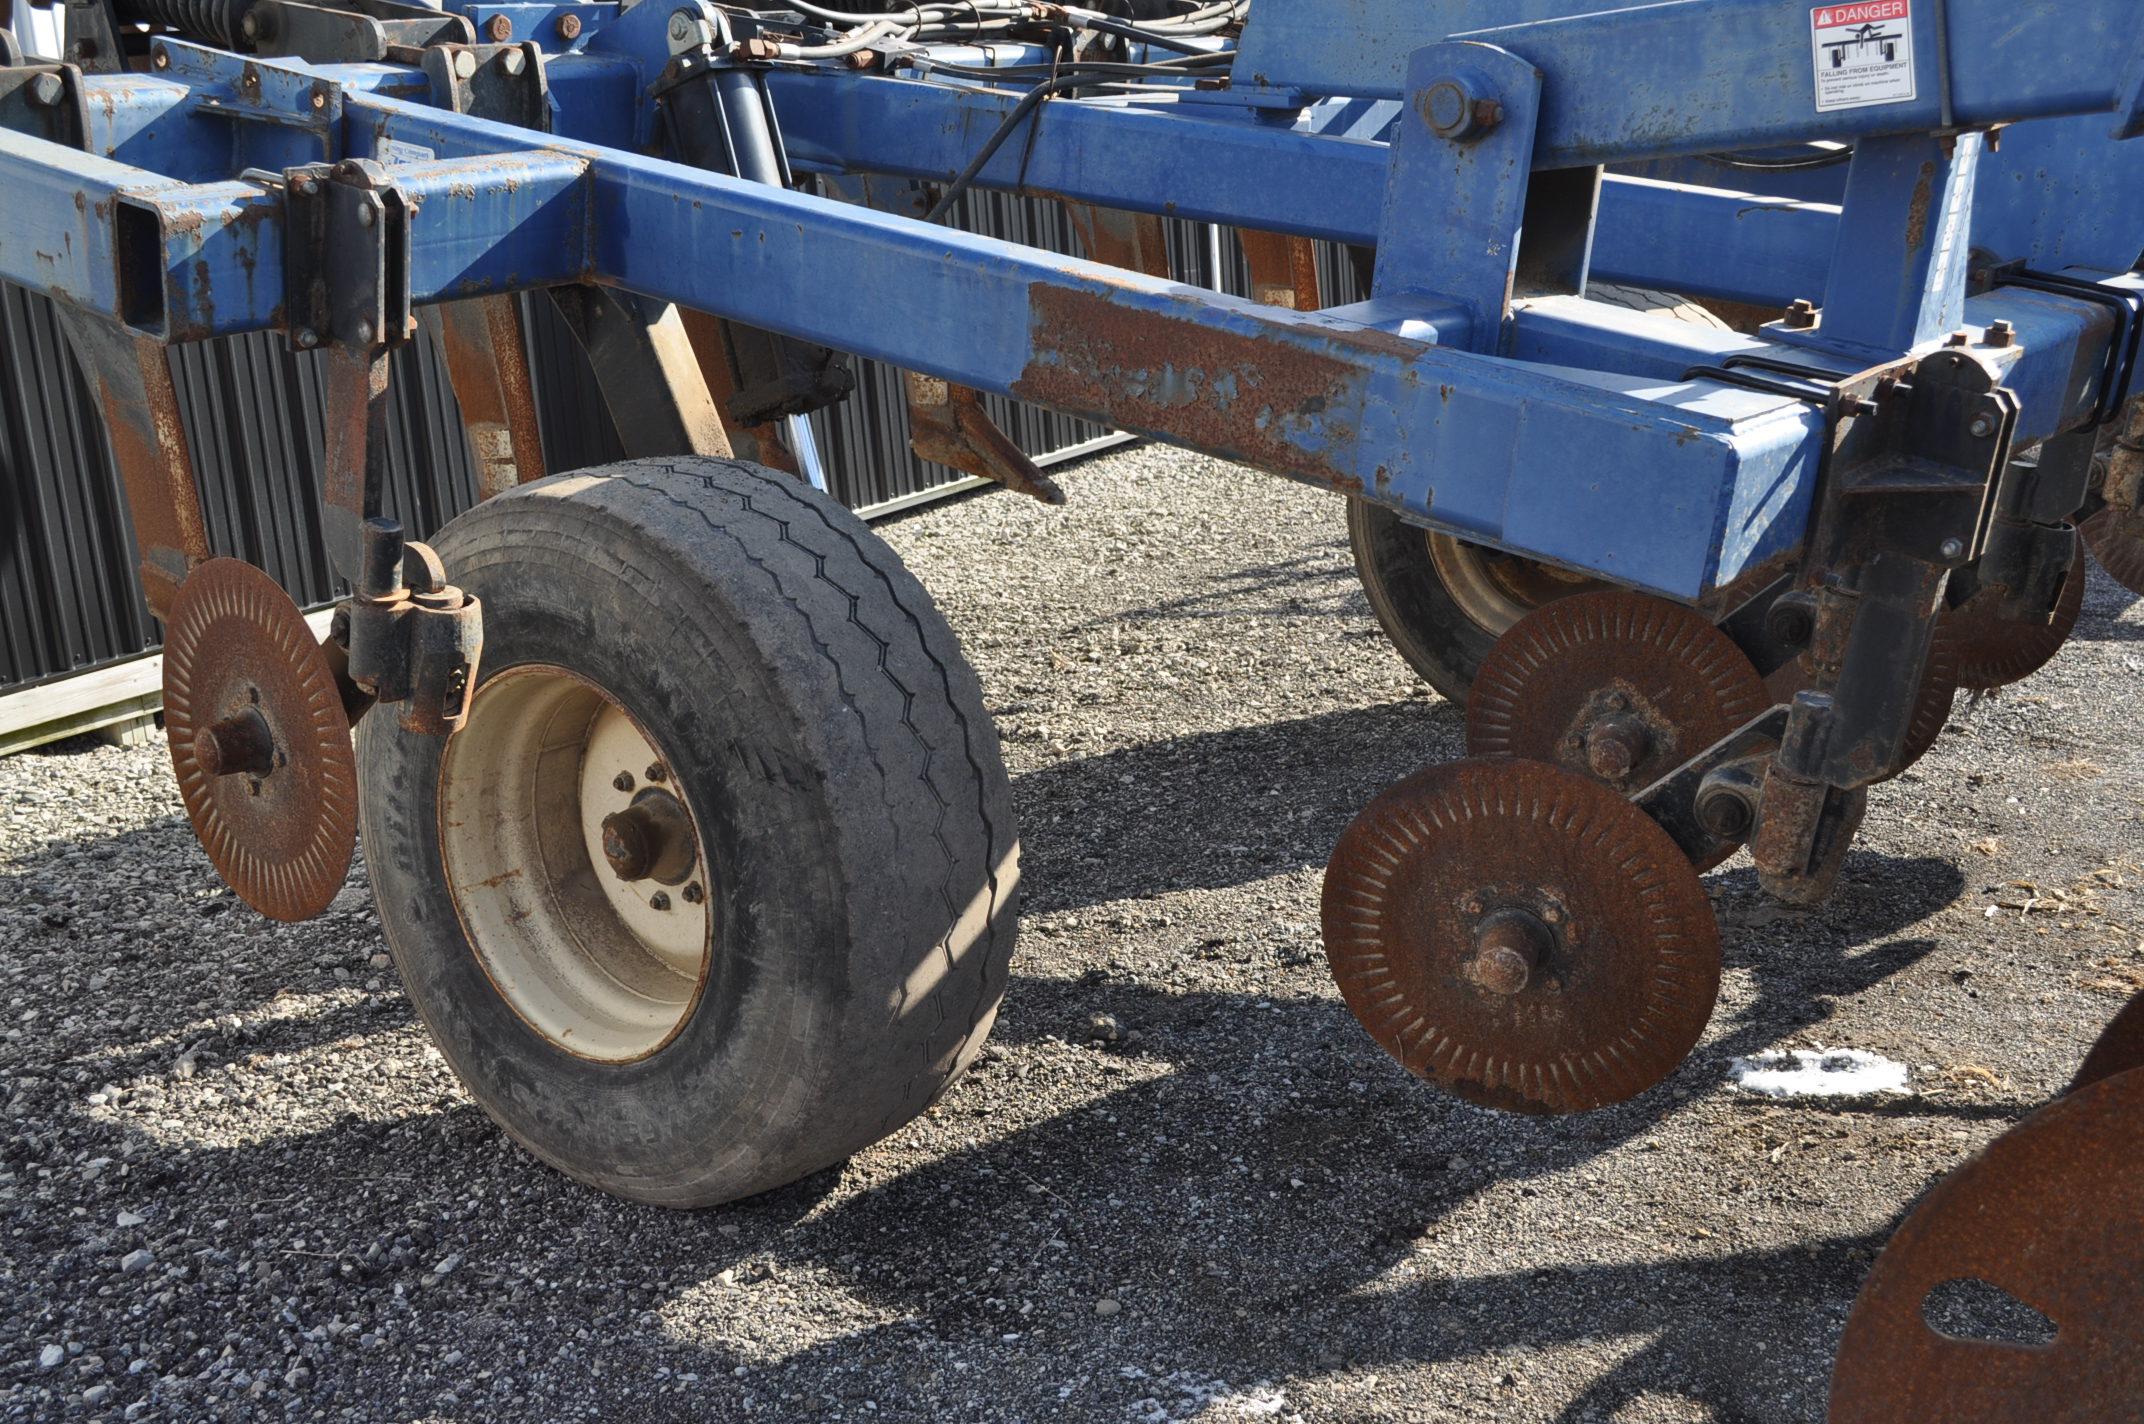 Blu-Jet Tillage Pro 7 shank inline ripper, front and rear hyd adjustable discs, sells with extra - Image 14 of 18